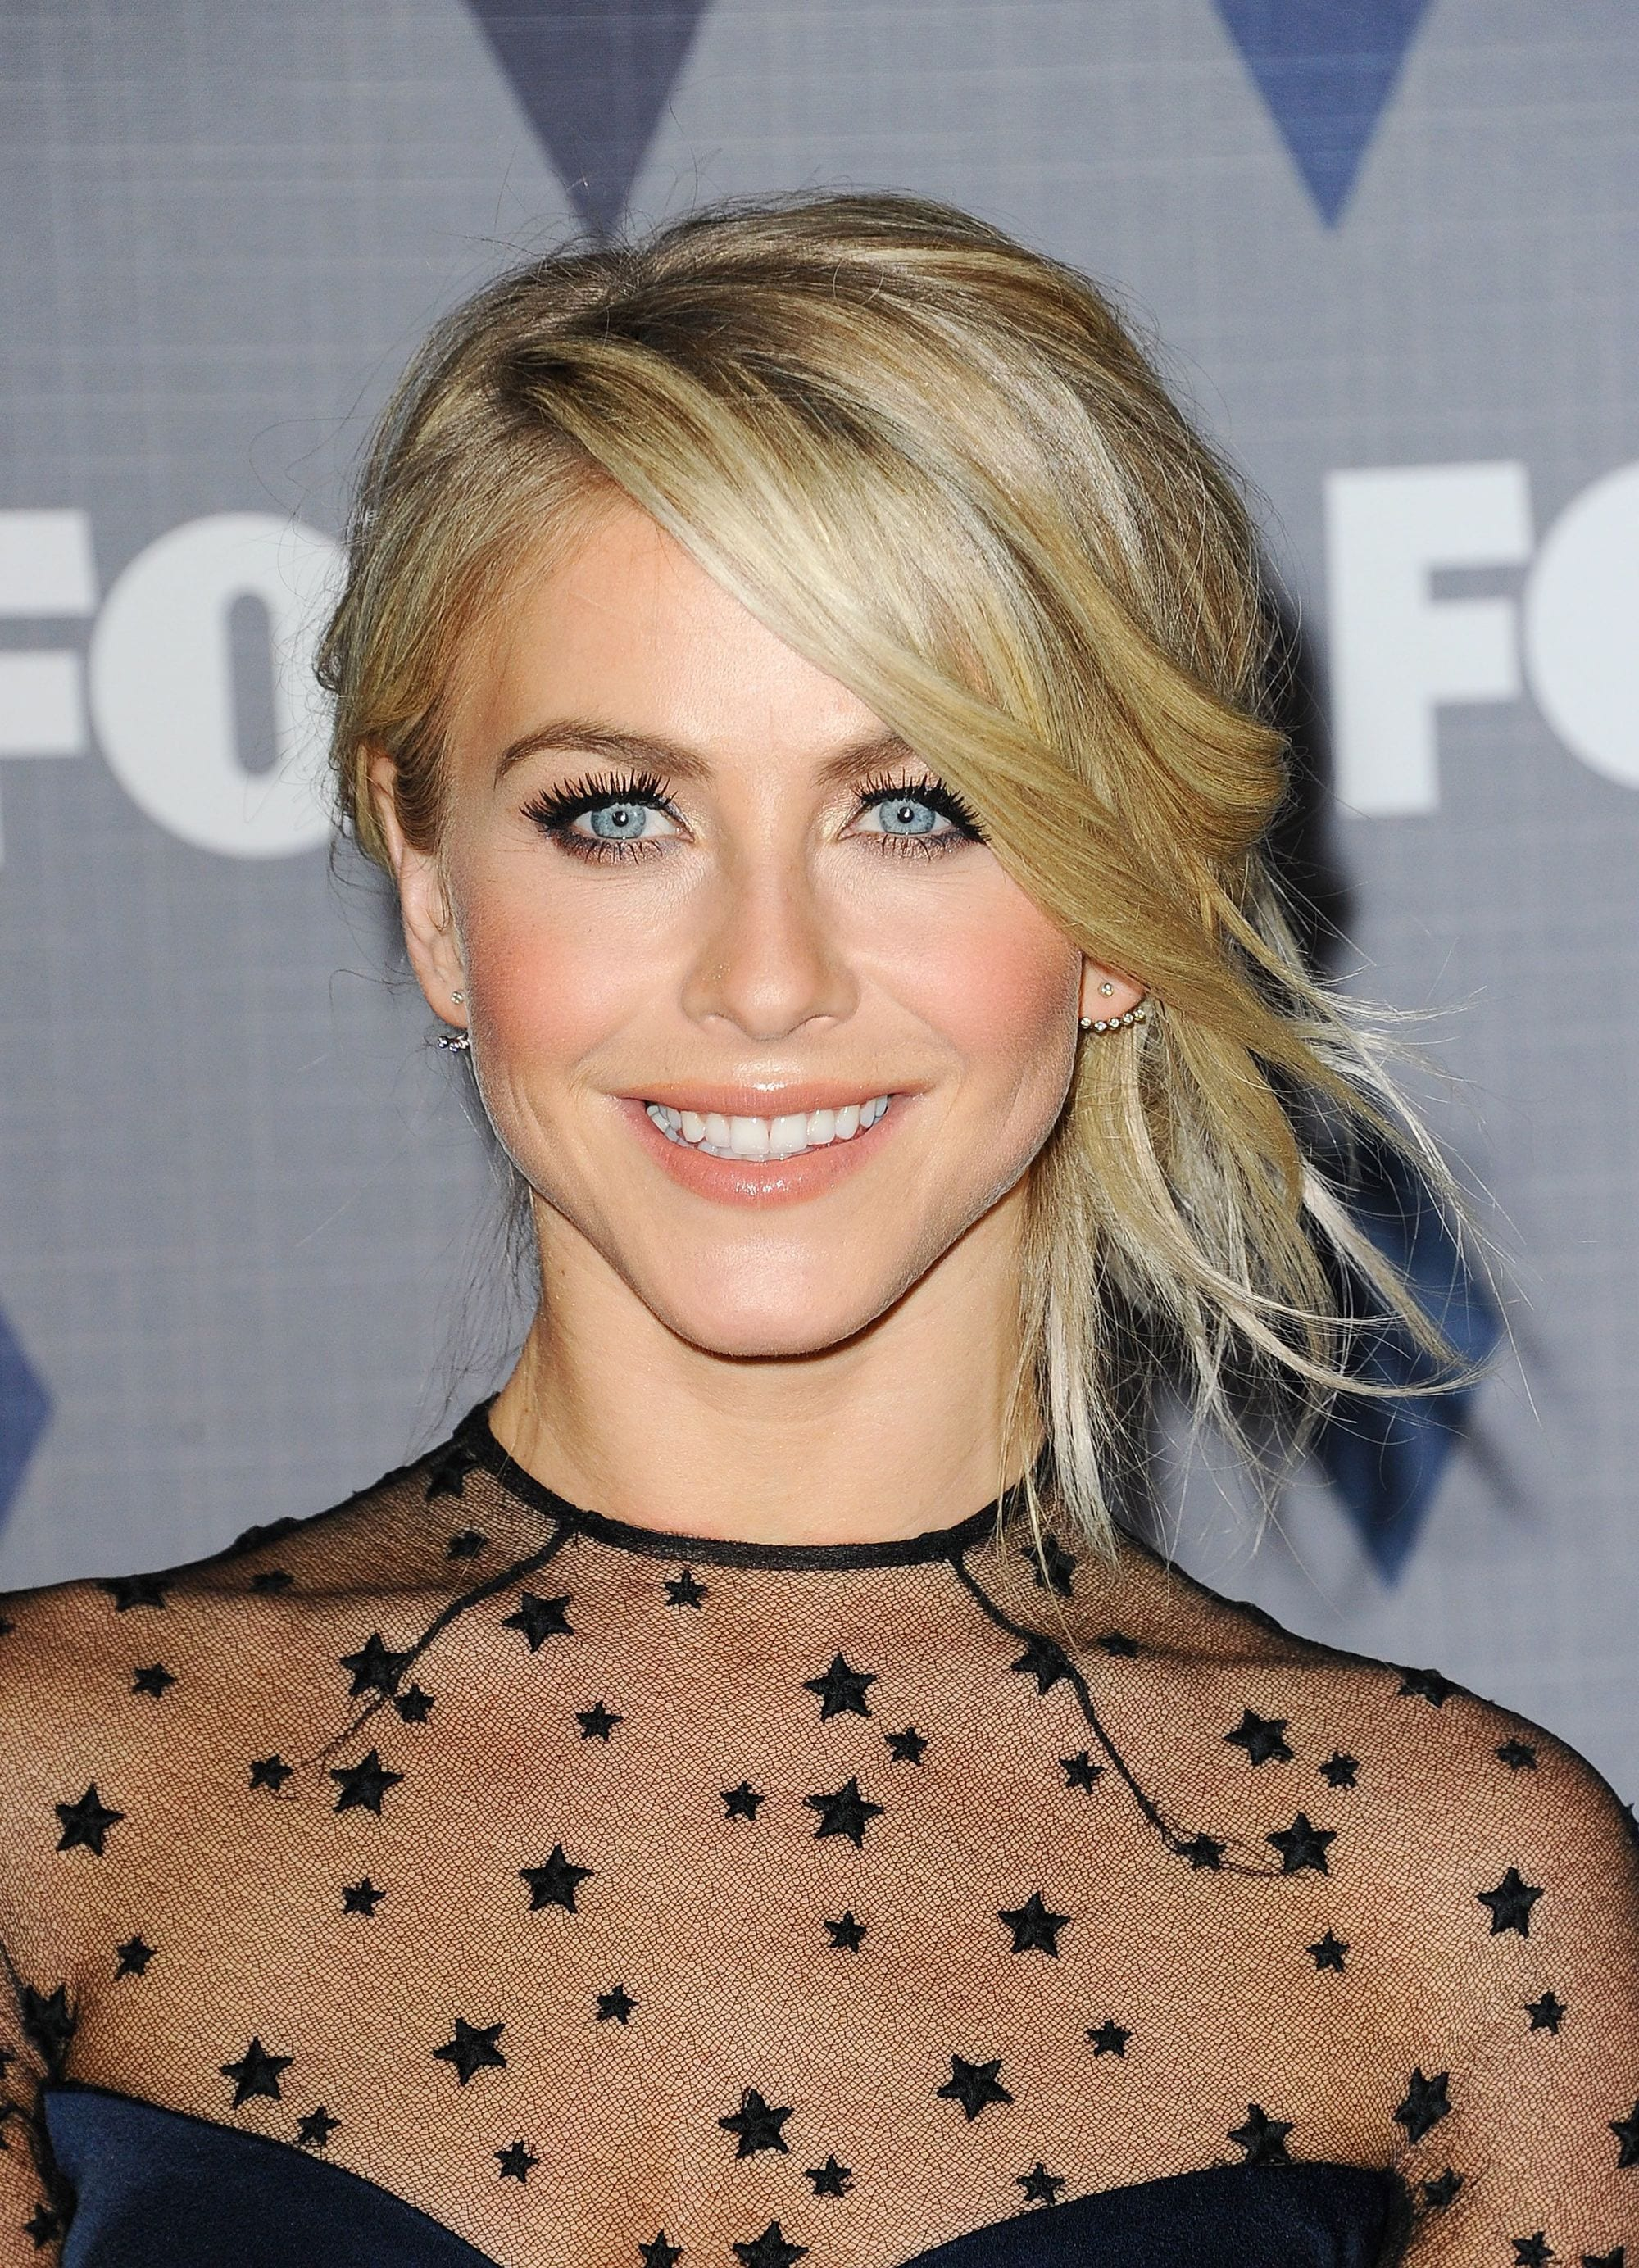 Choppy hair - Julianne Hough - Side updo with choppy side bangs